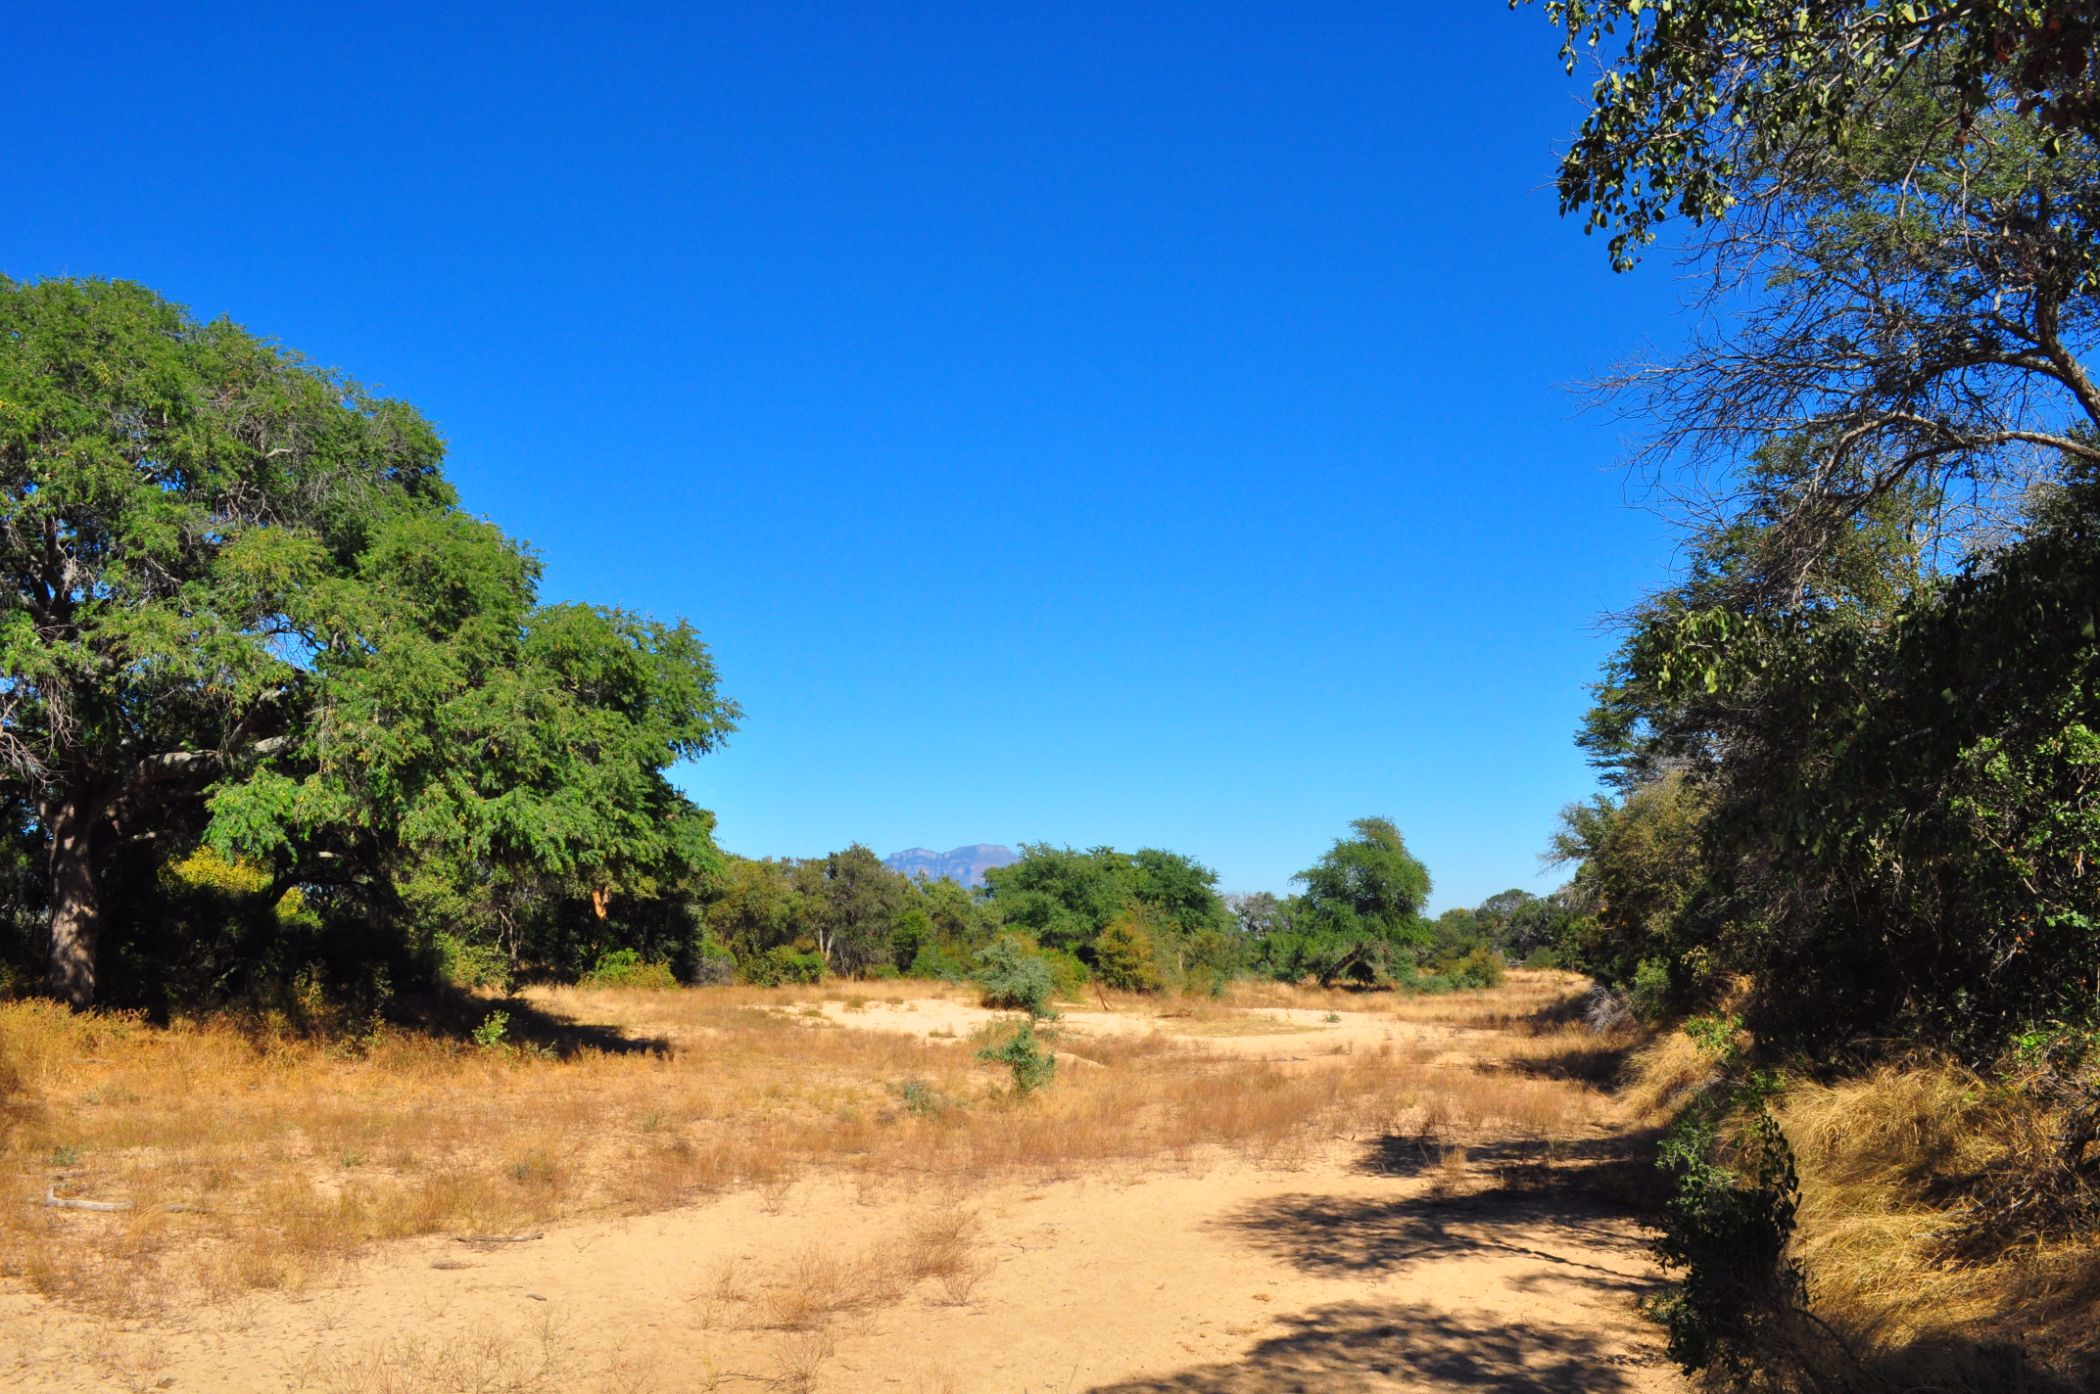 9971 m² vacant land for sale in Moditlo Nature Reserve